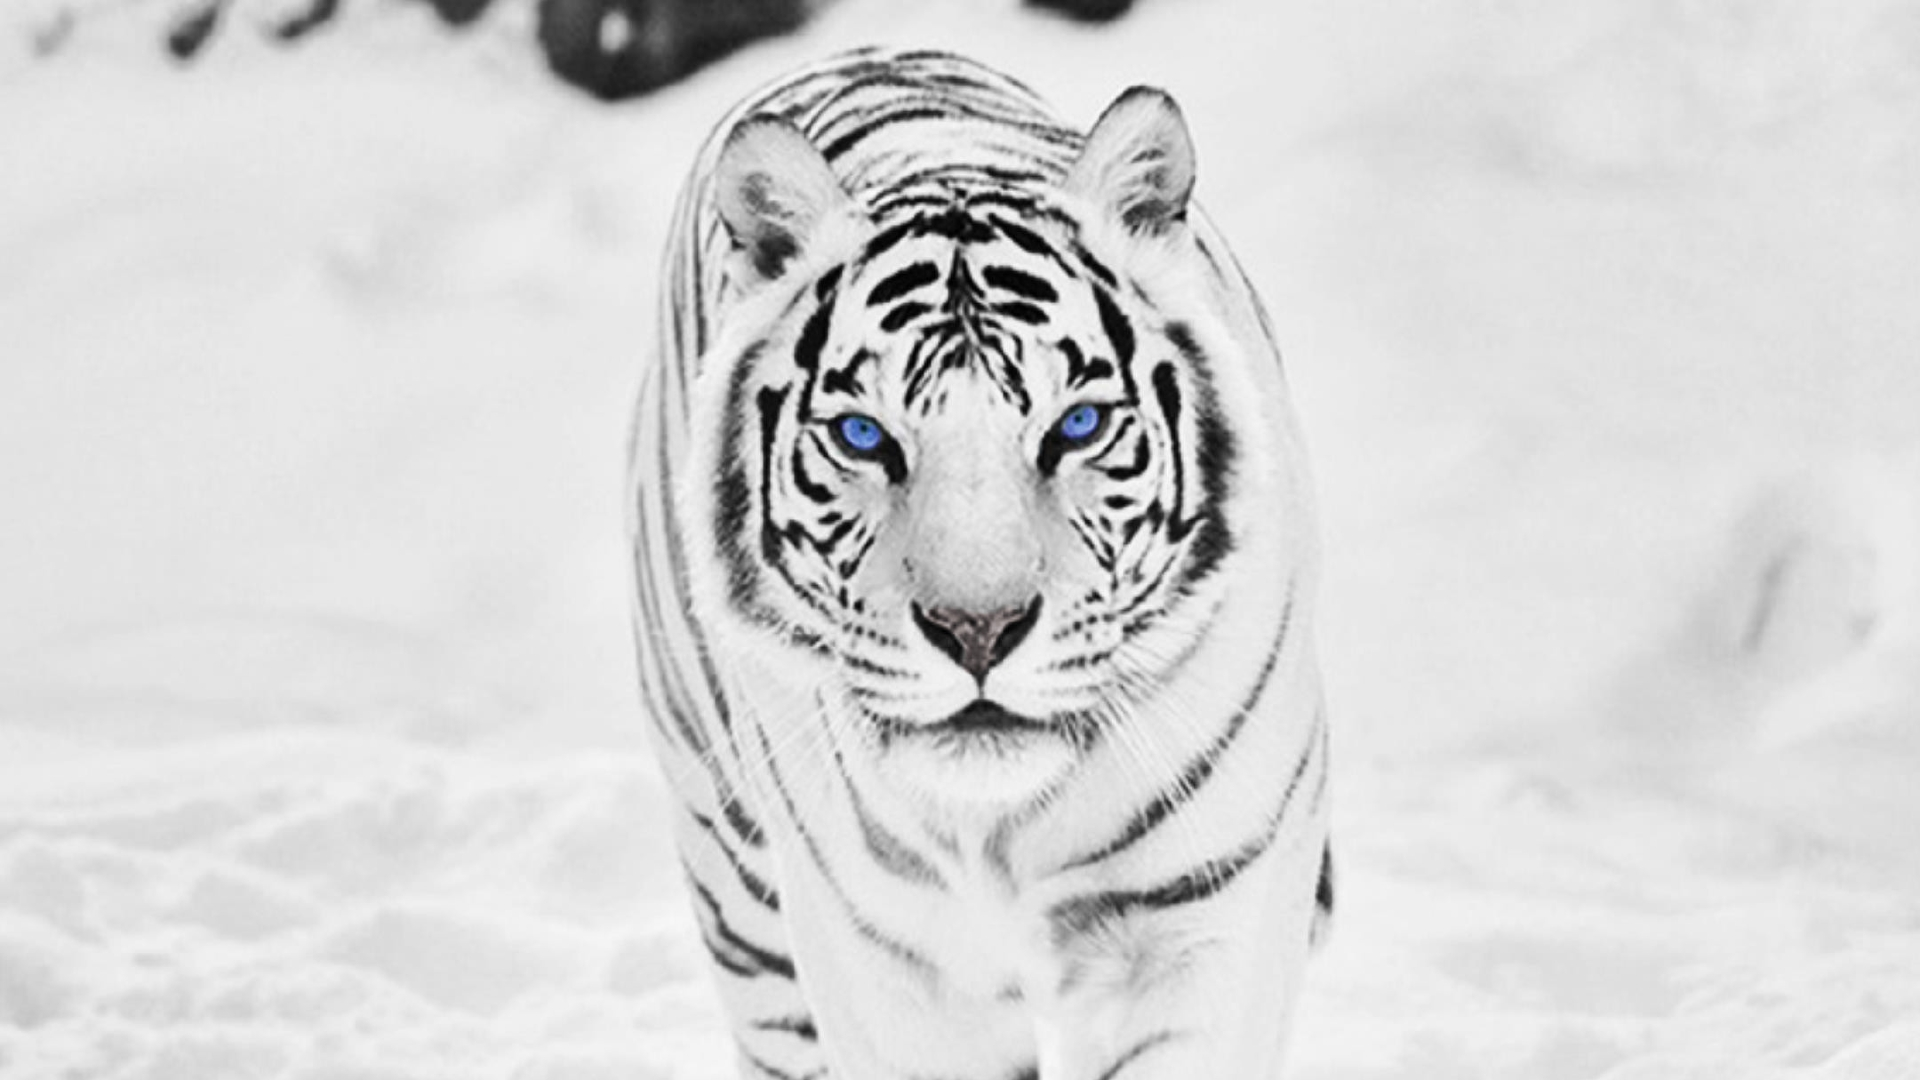 download white tiger wallpaper background for widescreen wallpaper